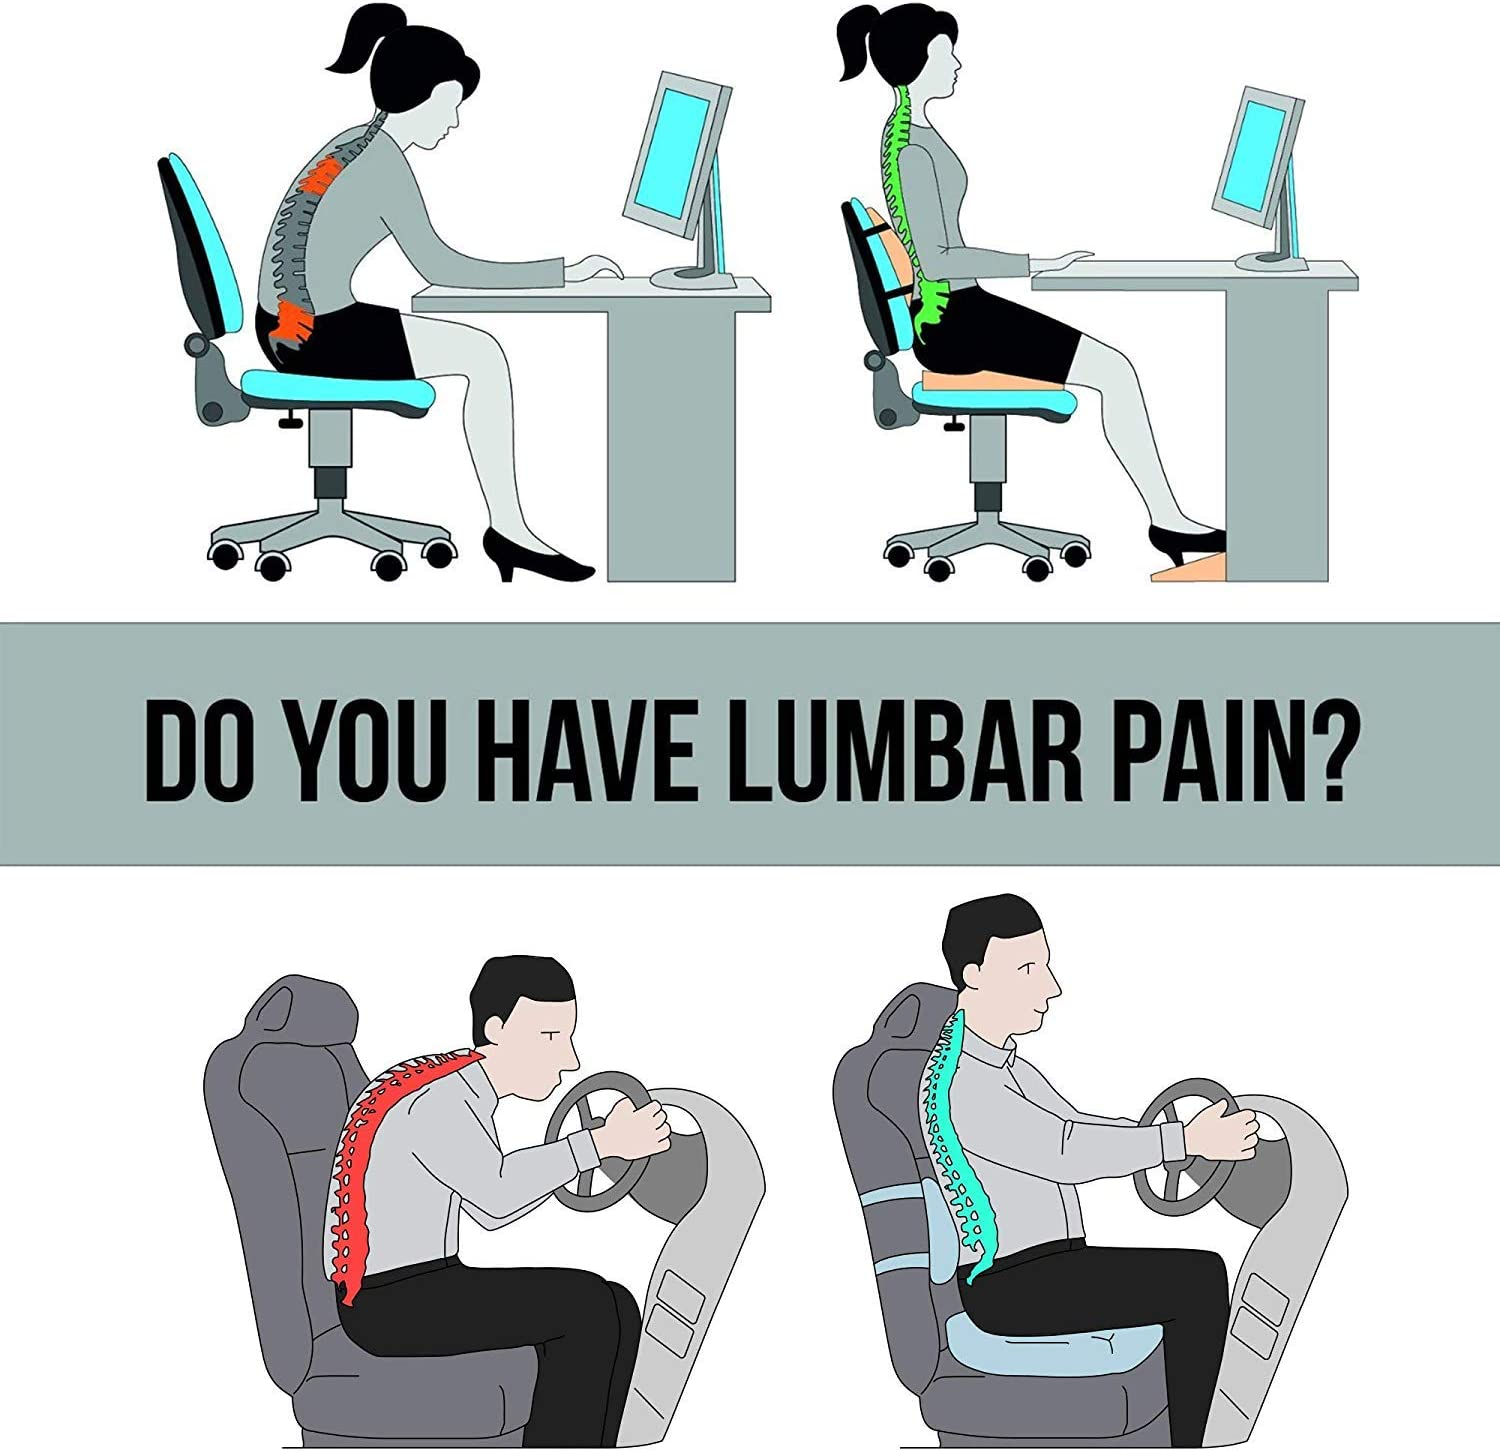 71DyxCJYu L. AC SL1500 - What Are The Best Seat Cushion For Buttock Pain That Help You Sit Comfortably - ChairPicks